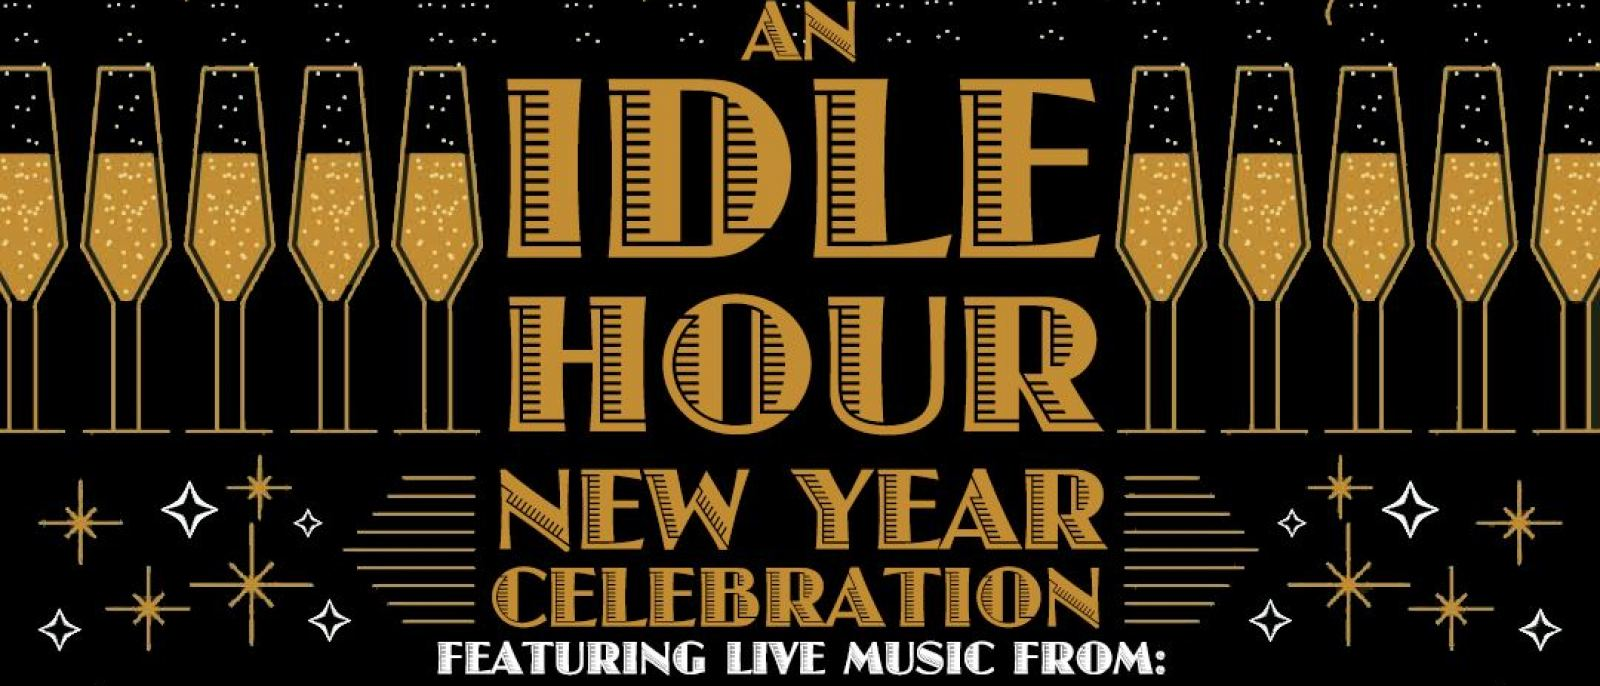 NYE 2020 at Idle Hour in North Hollywood